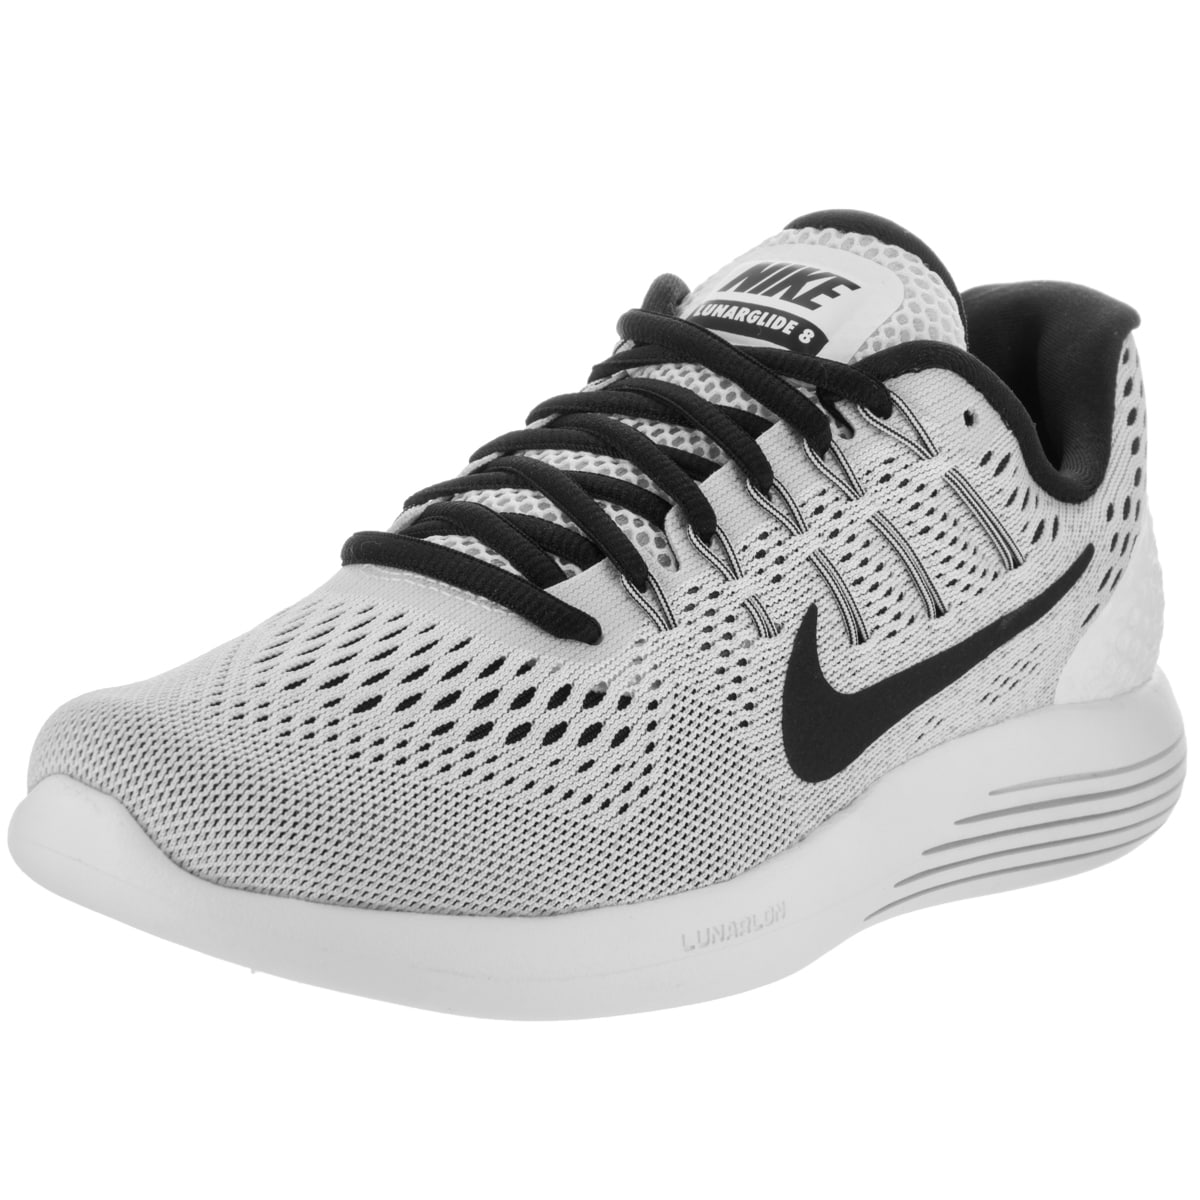 Nike Women's Lunarglide 8 Running Shoes (6.5), White (lea...